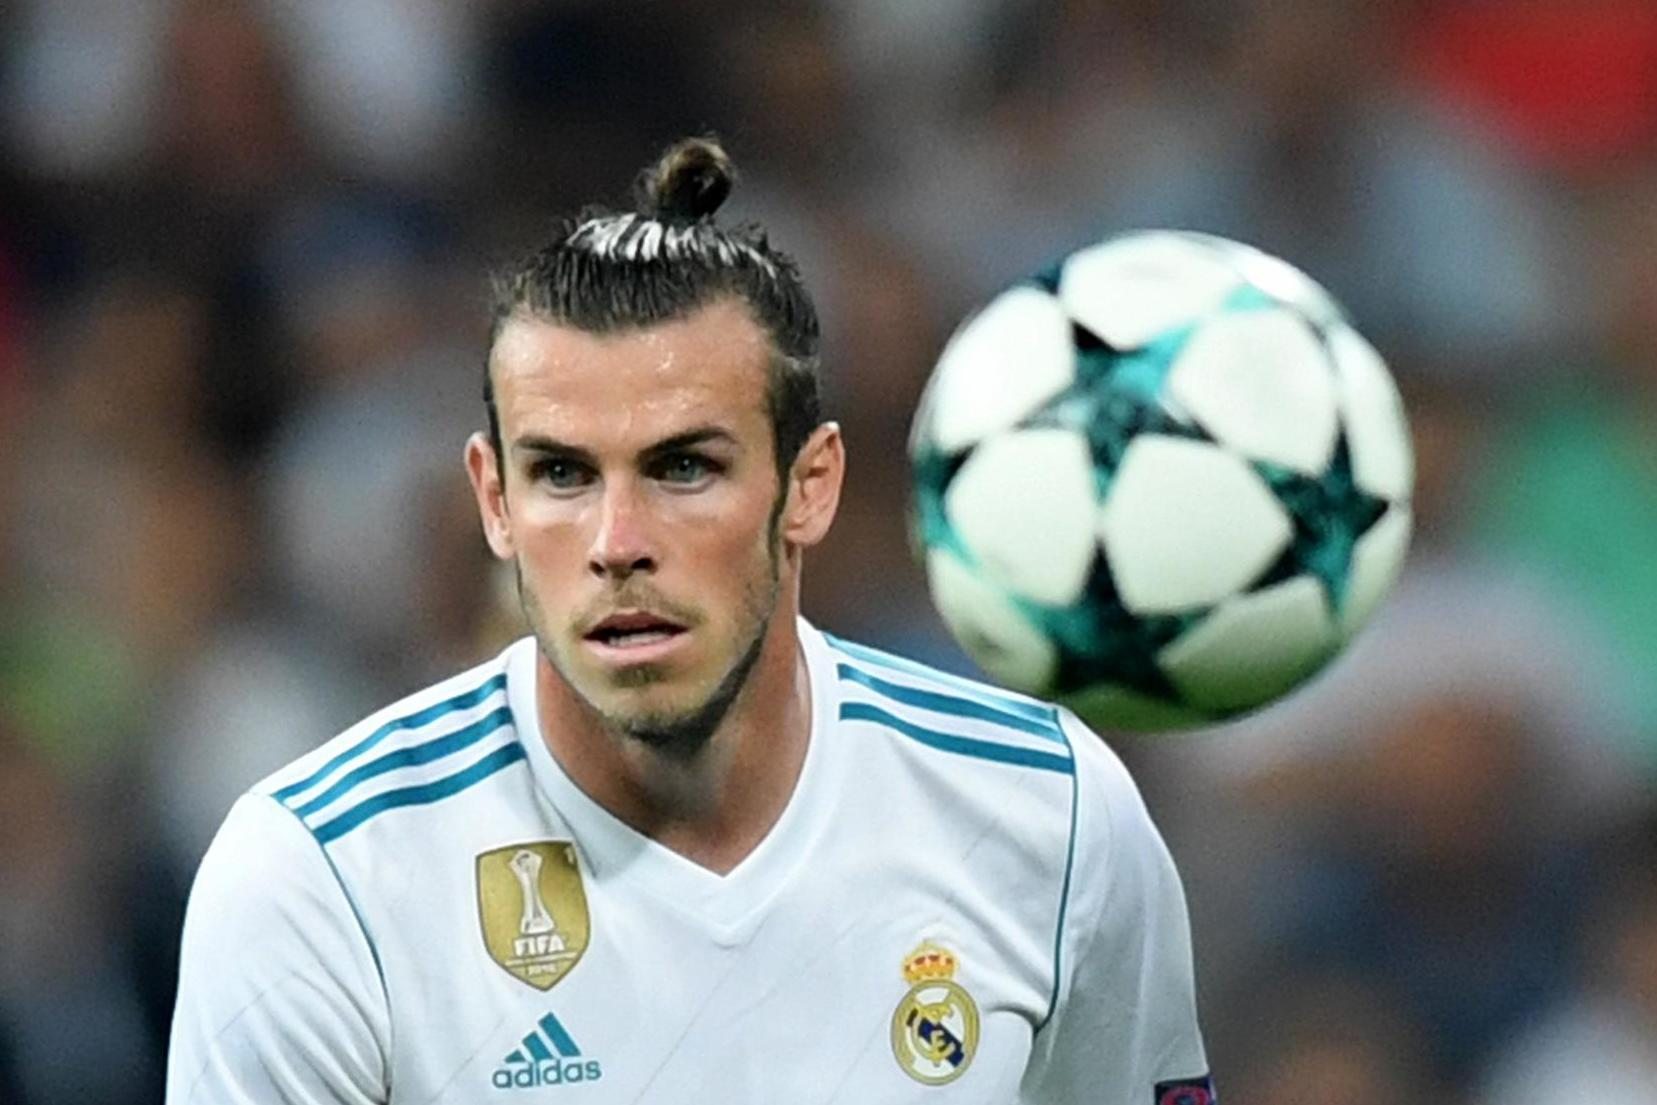 Gareth Bale will almost surely miss the team s trip to face